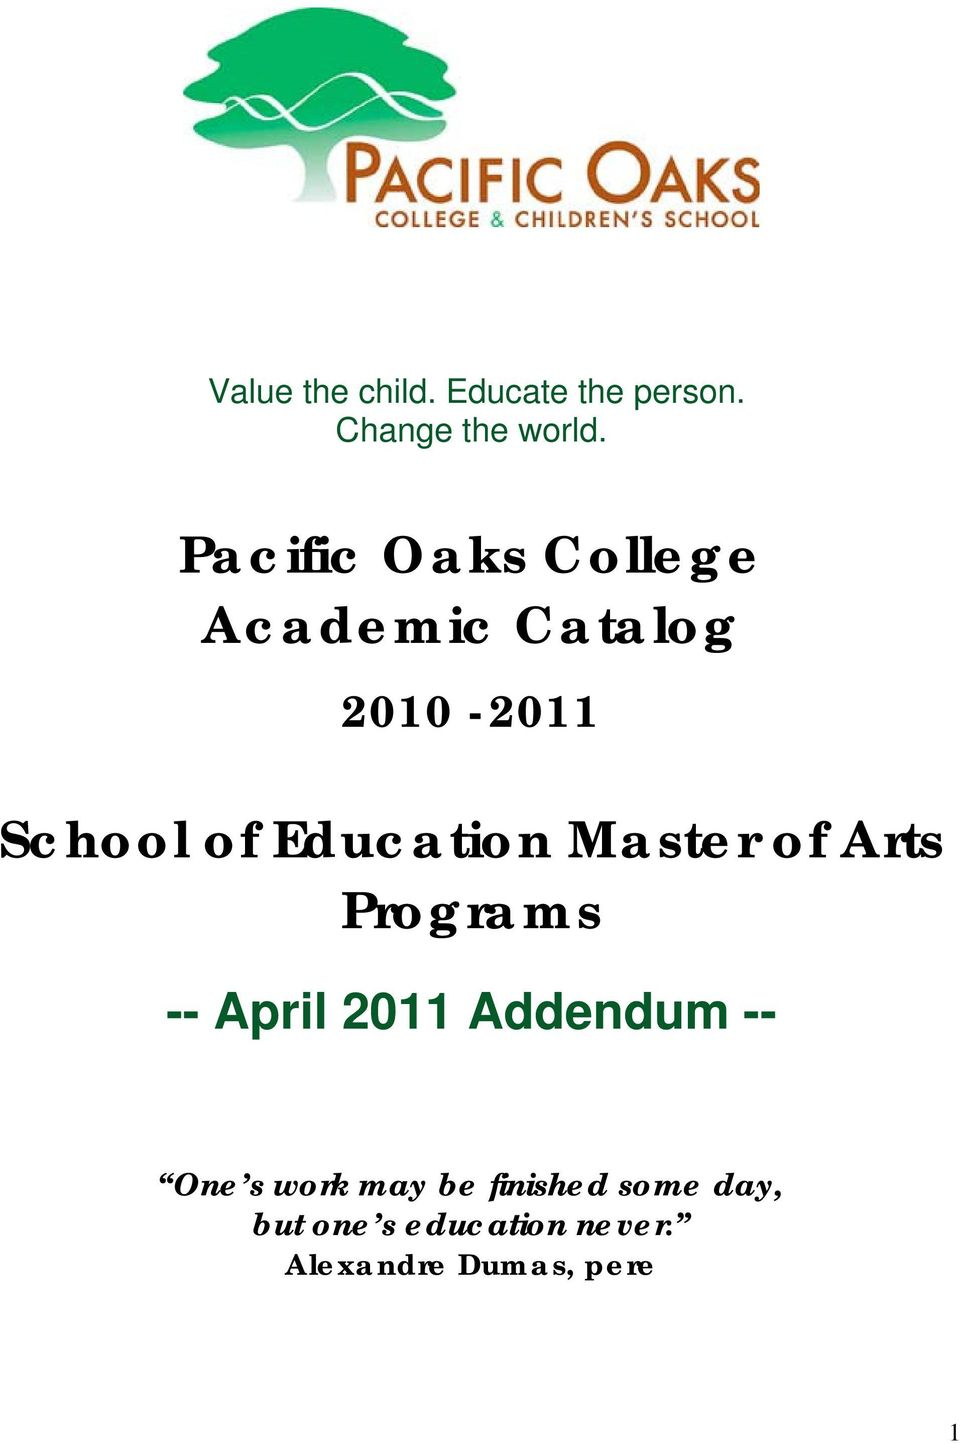 Education Master of Arts Programs -- April 2011 Addendum -- One